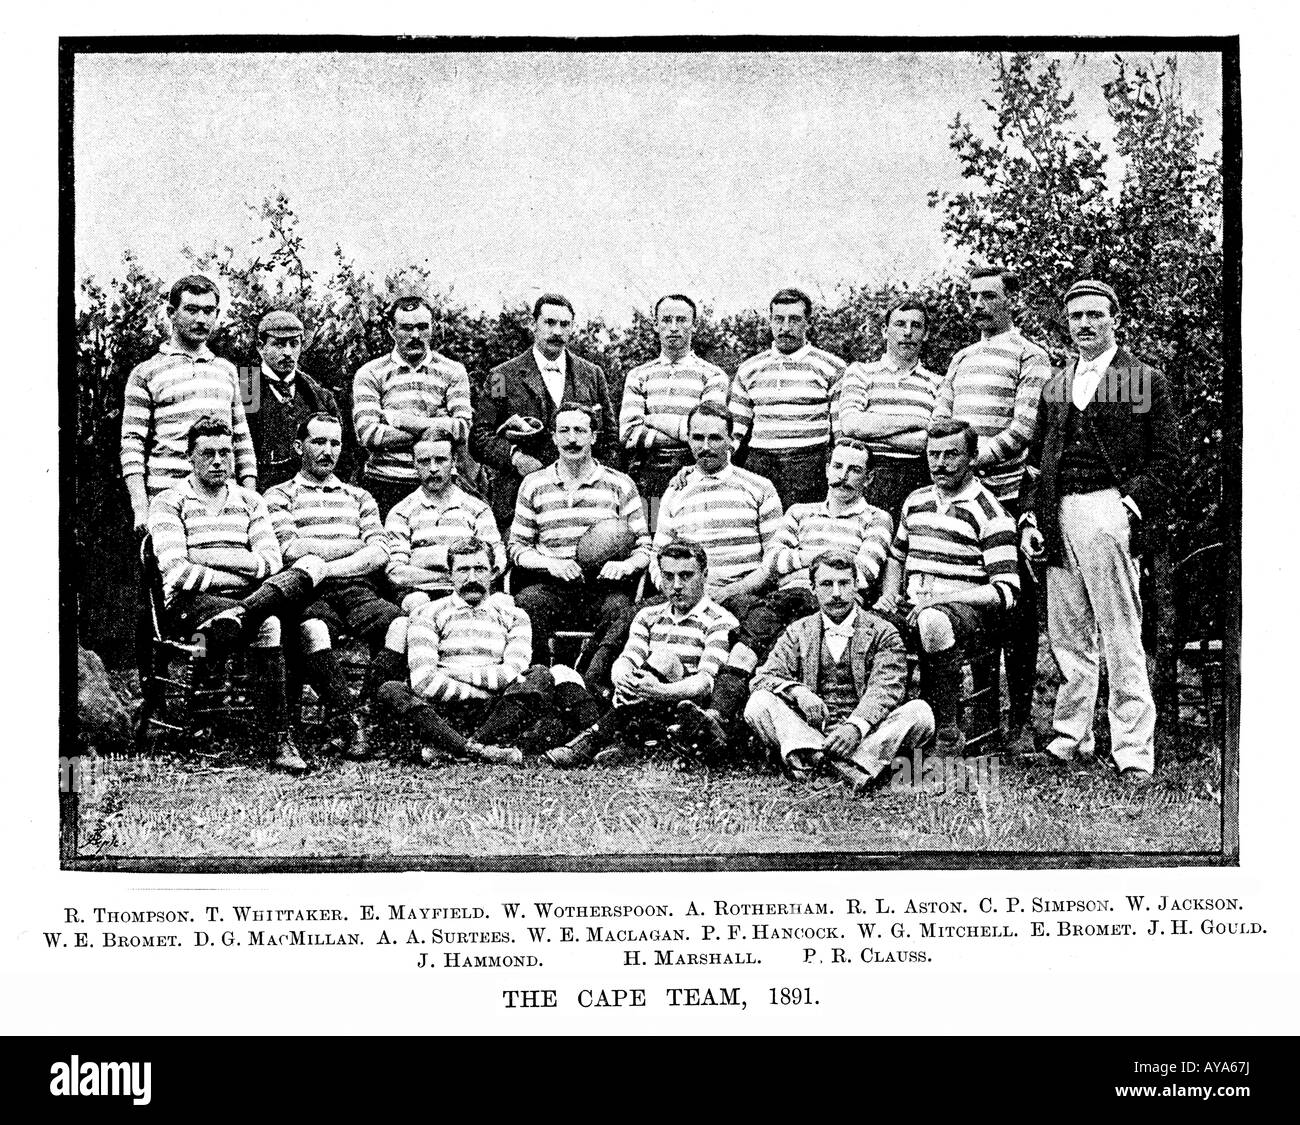 British Team South Africa 1891 The First Official Overseas Tour Of RFU